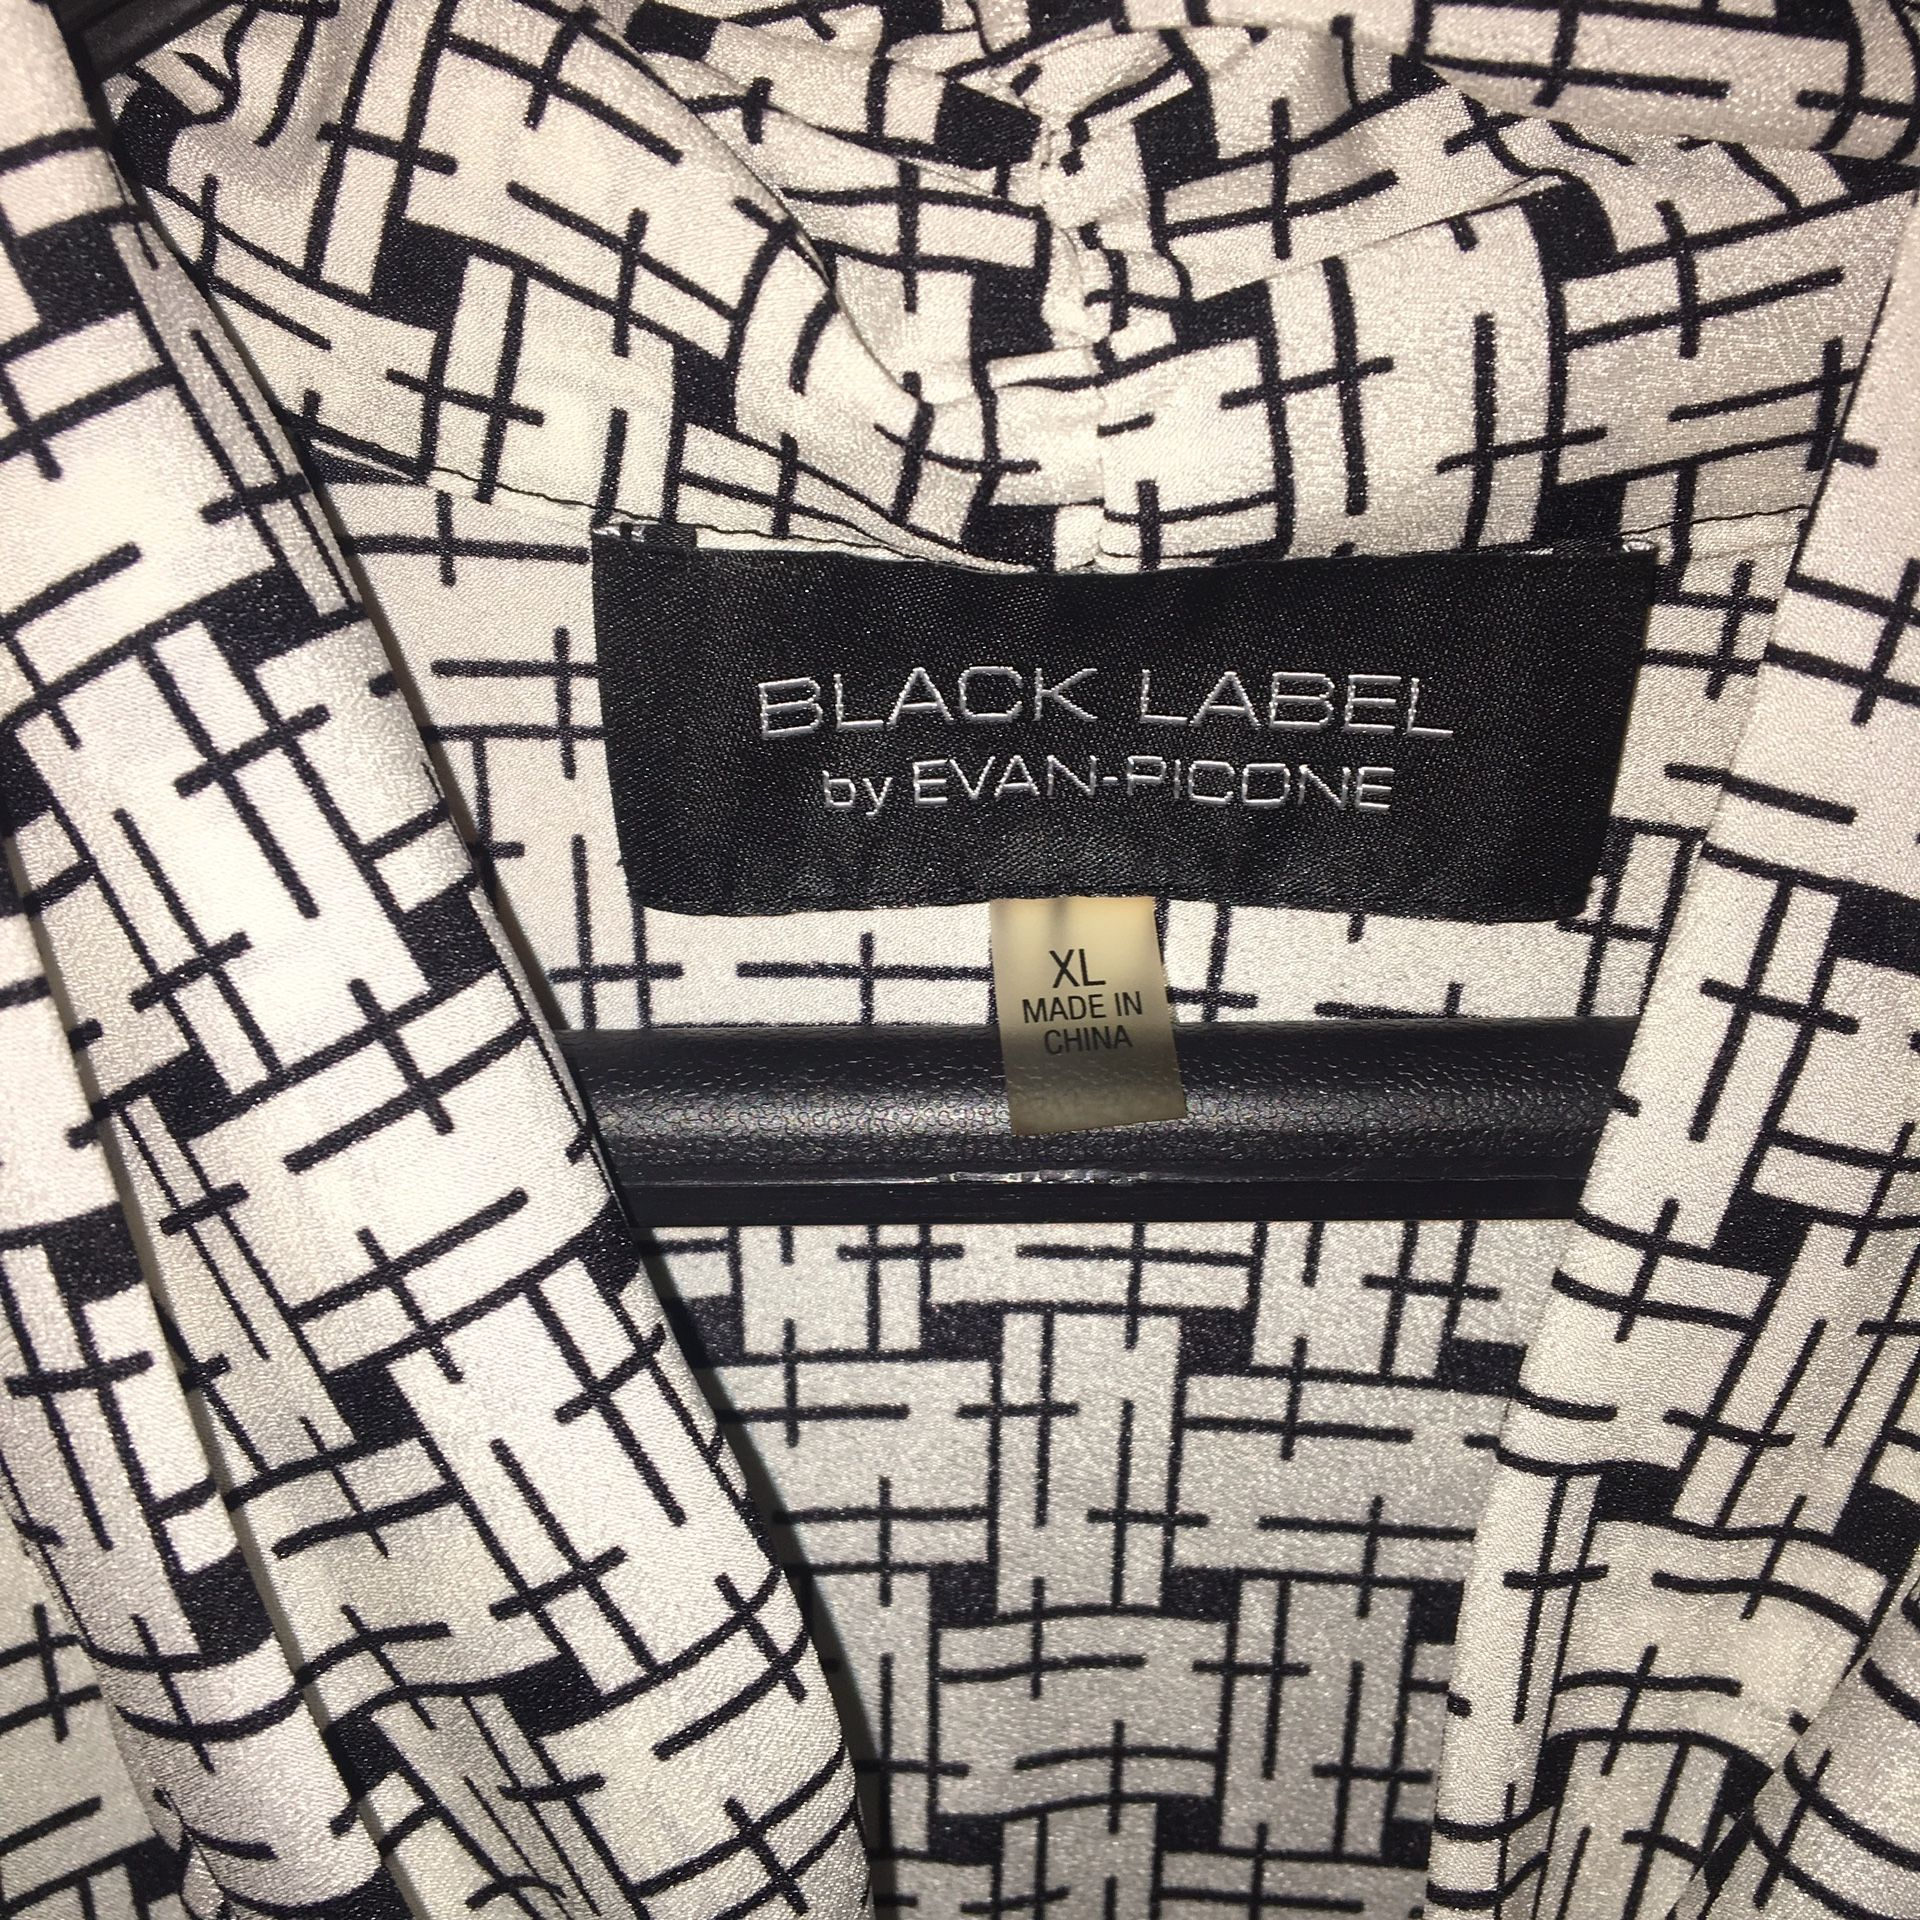 Black label size XL by Evan Picone like new